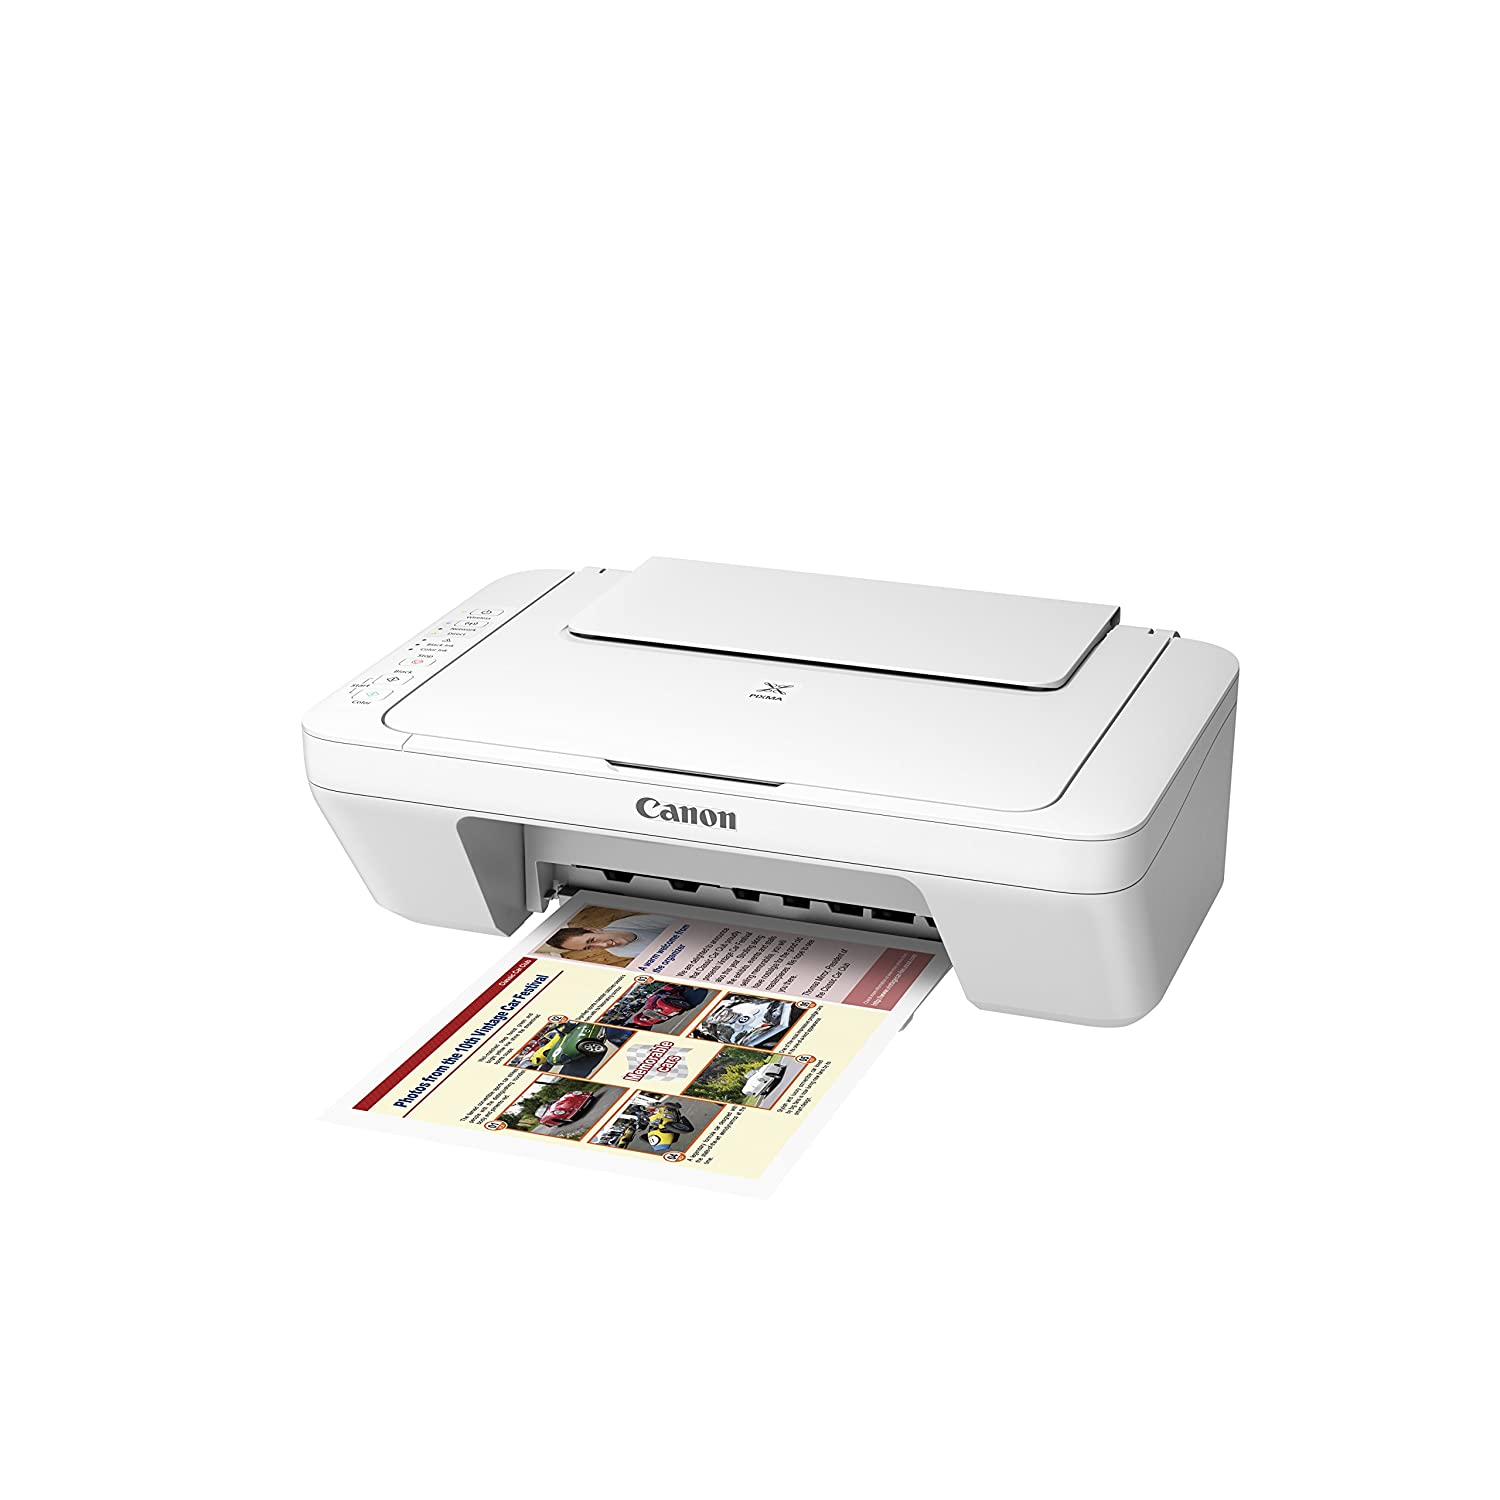 Canon MG3020 Wireless Color Photo Printer with Scanner and Copier, White Canon Canada (Direct)